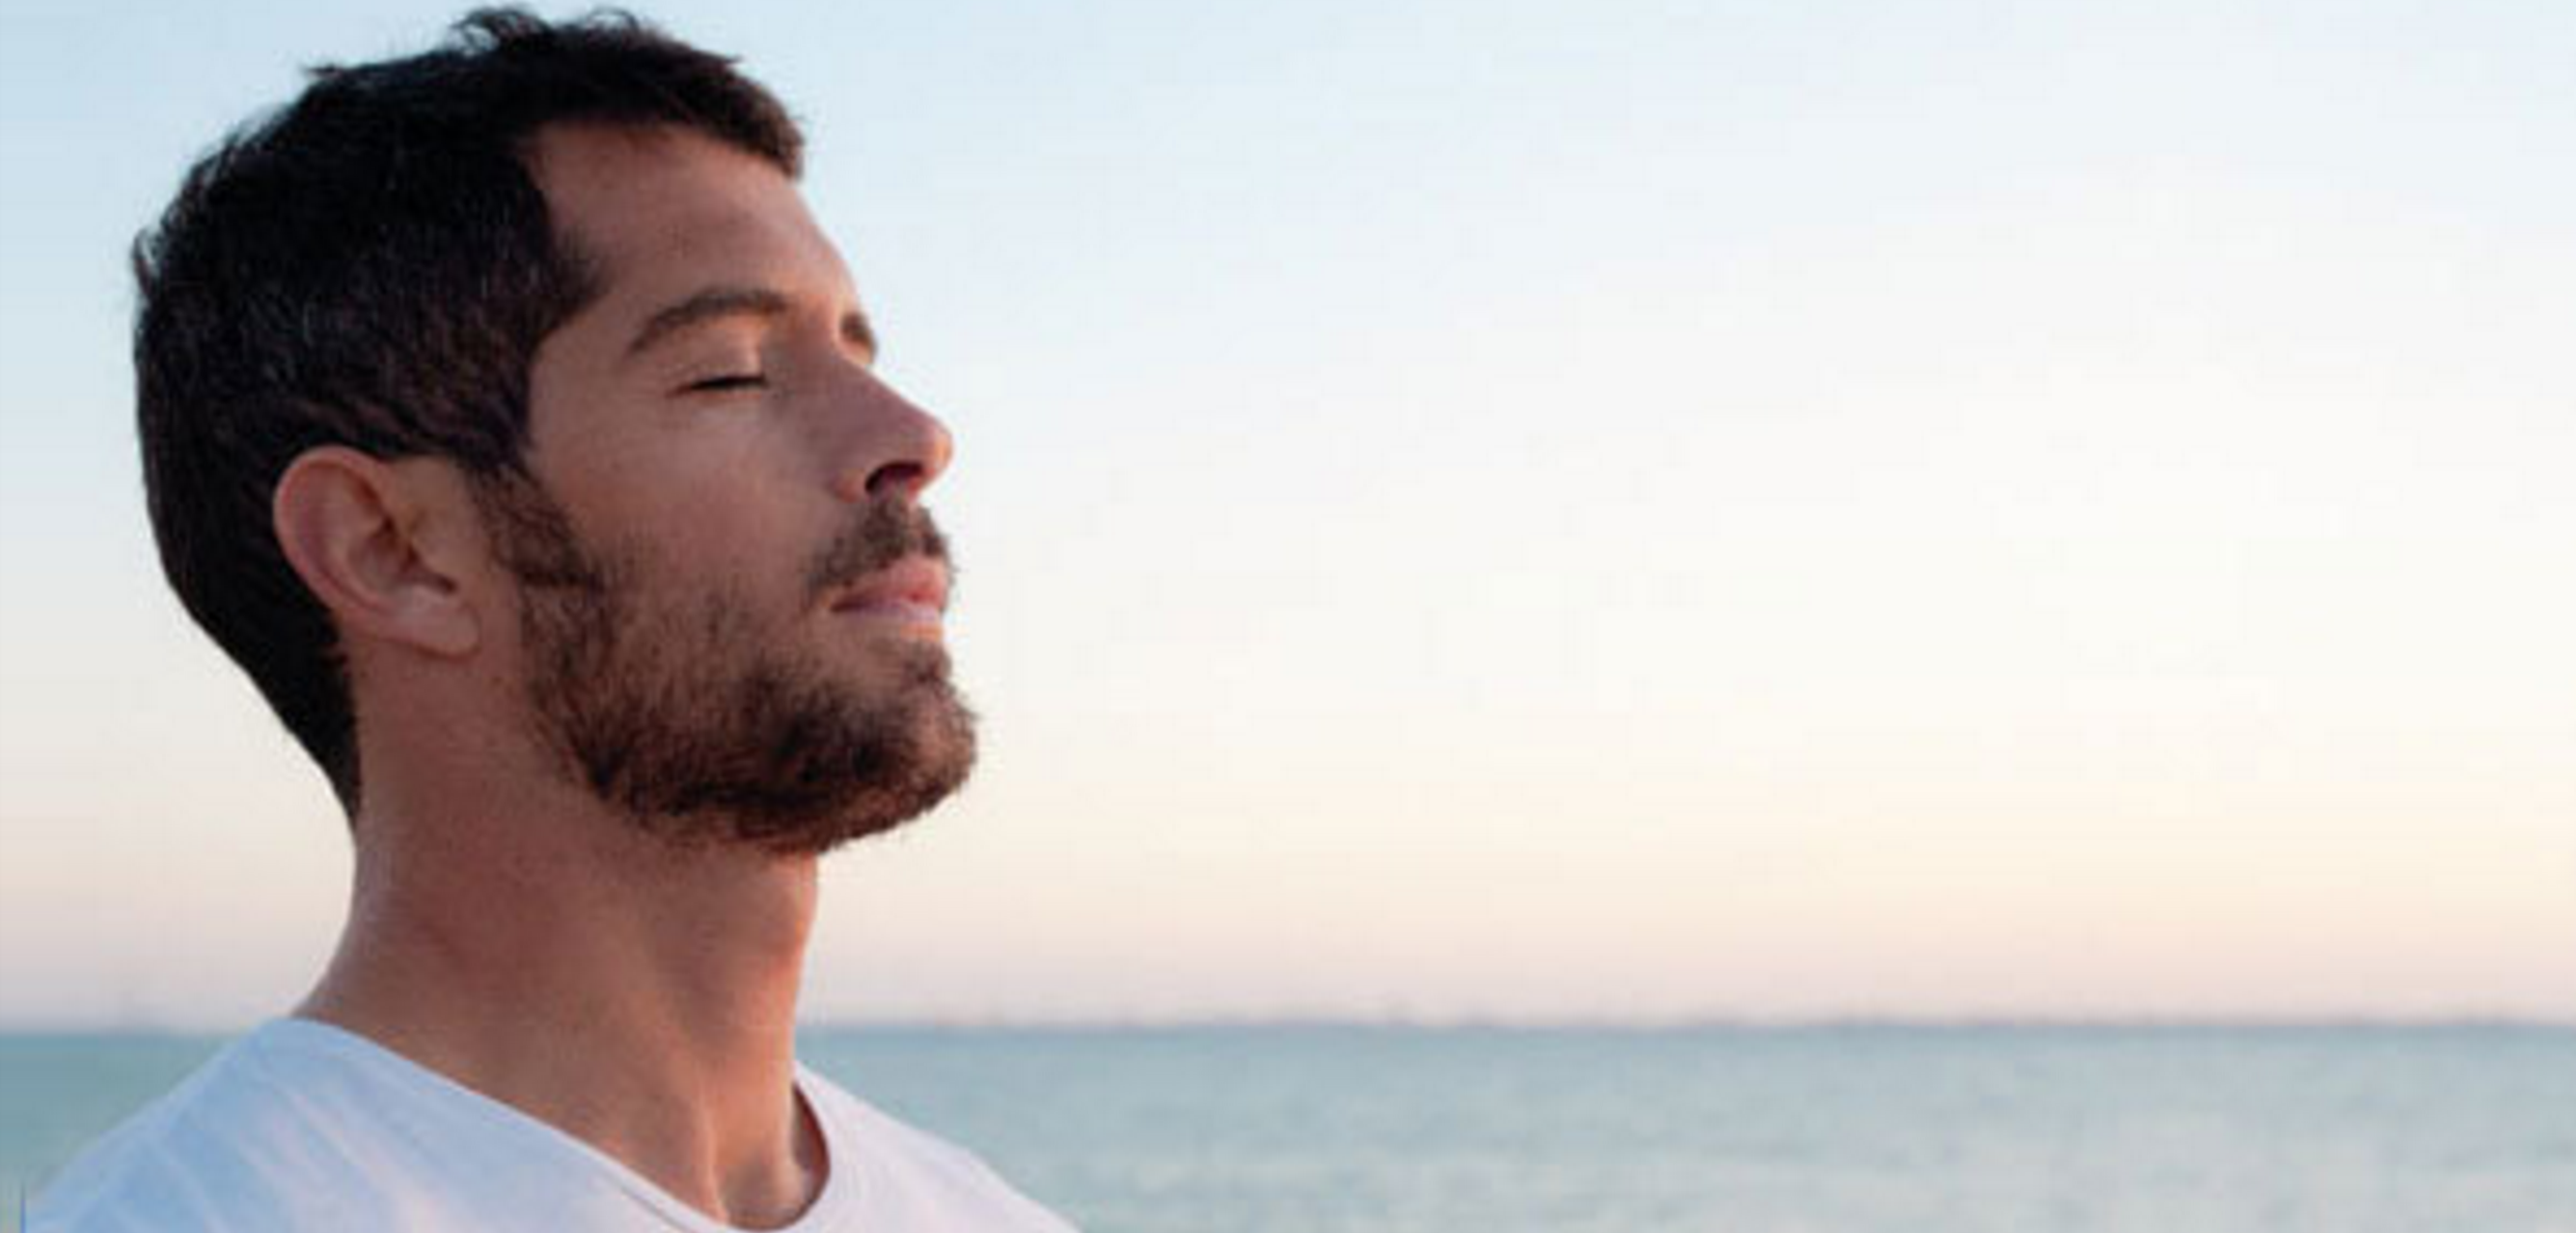 Breathe, Meditate & Be Happy! An Intro to the Art of Living Happiness Program